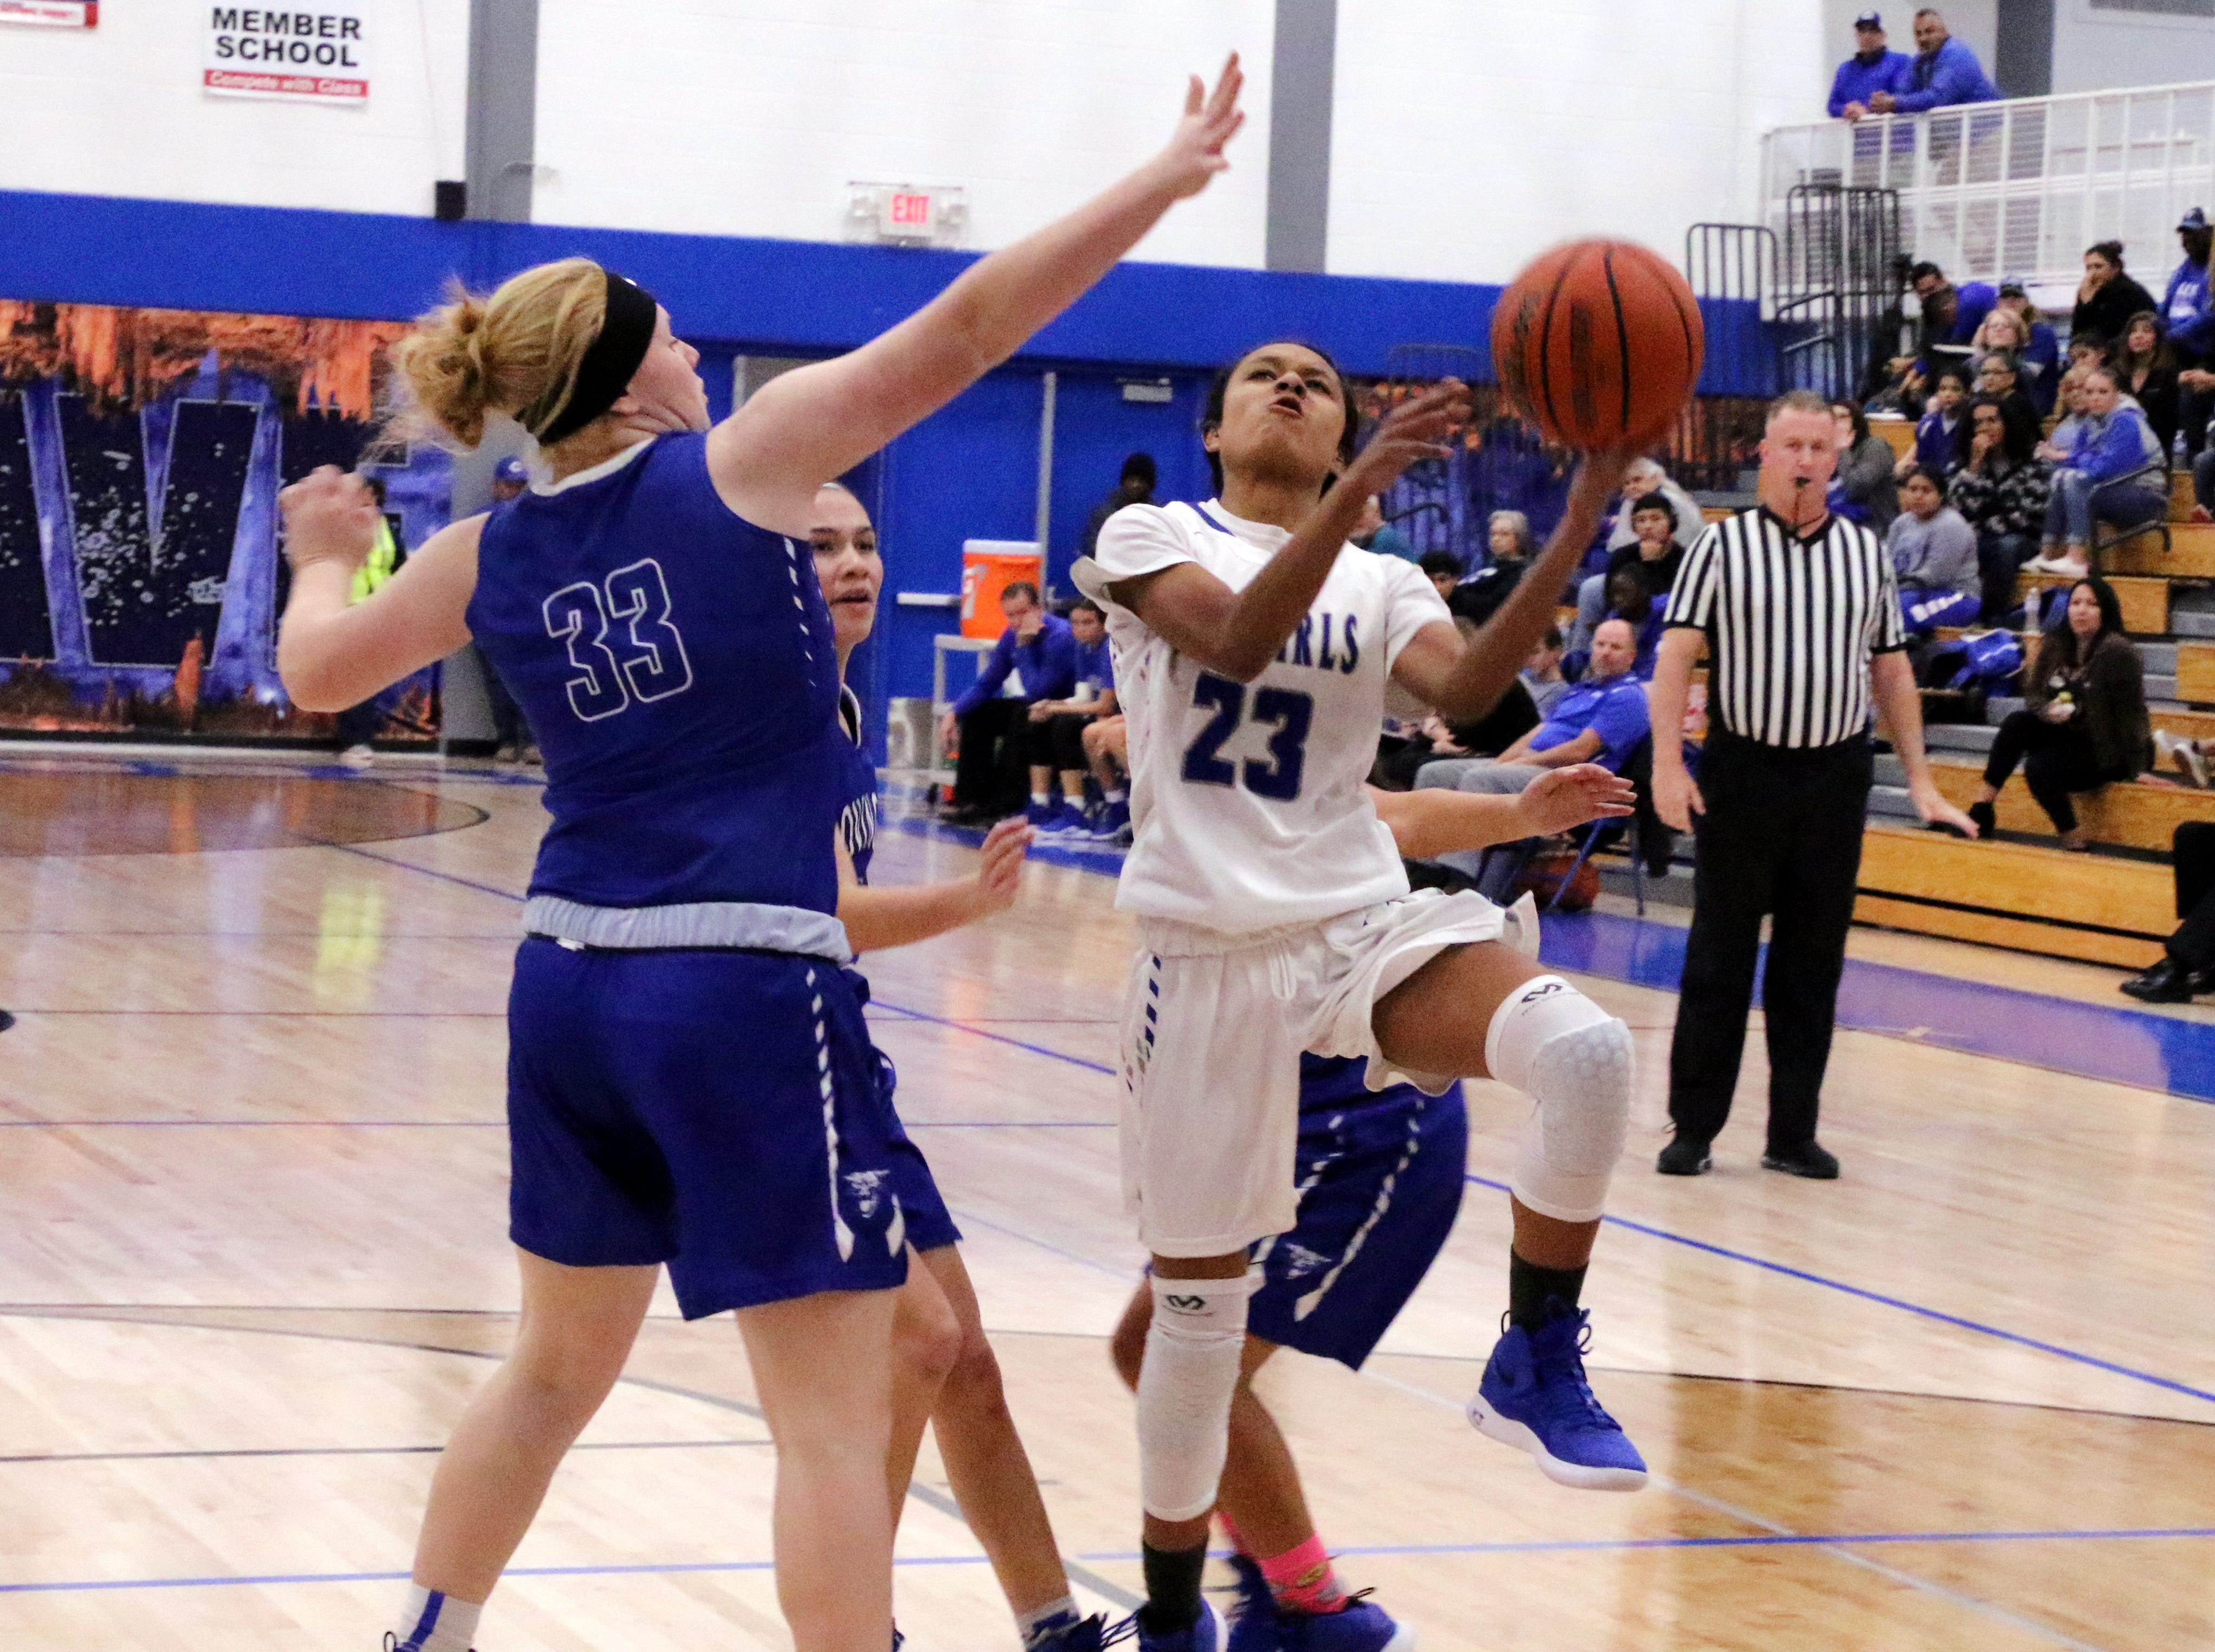 Carlsbad's Aaliyah Jones goes for a layup during the fourth quarter in Tuesday's game against Lovington. She finished with two points.